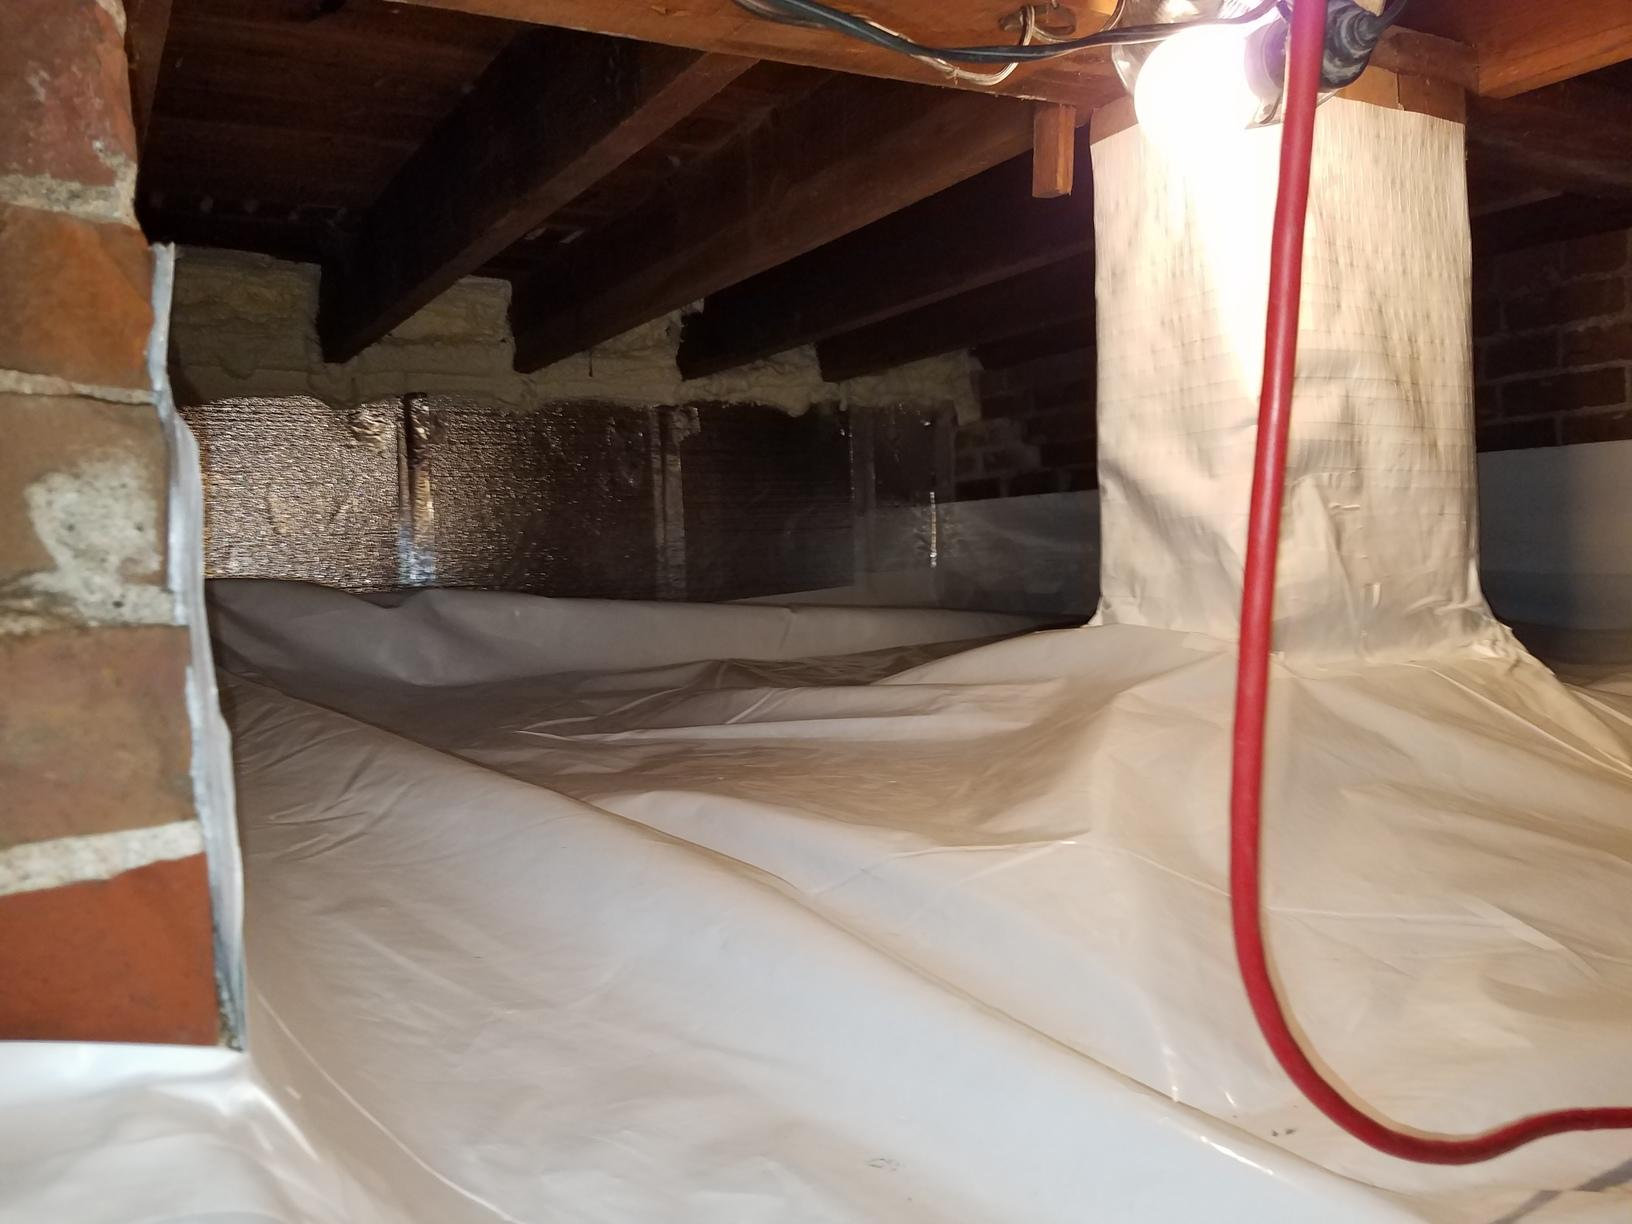 The foundation pillars are also covered to make sure the crawlspace is fully sealed.